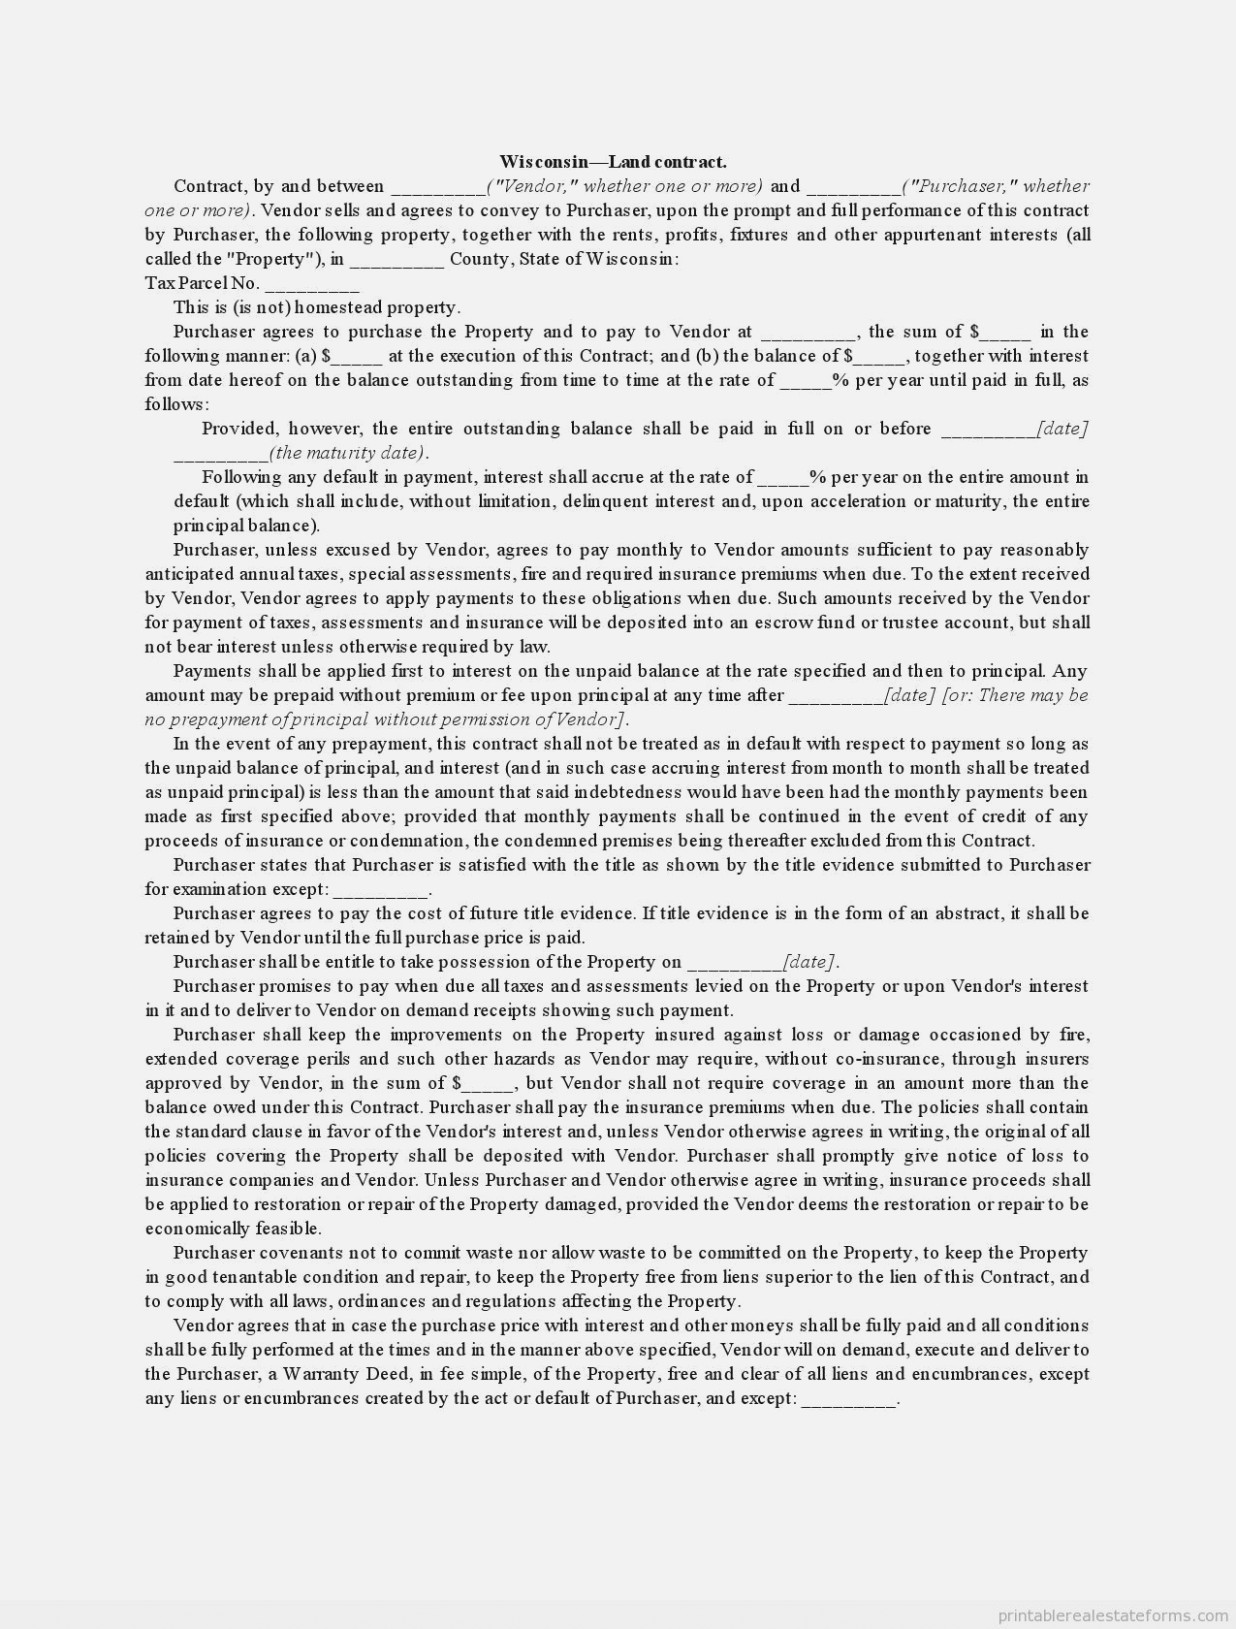 Wisconsin Land Contract Form 11